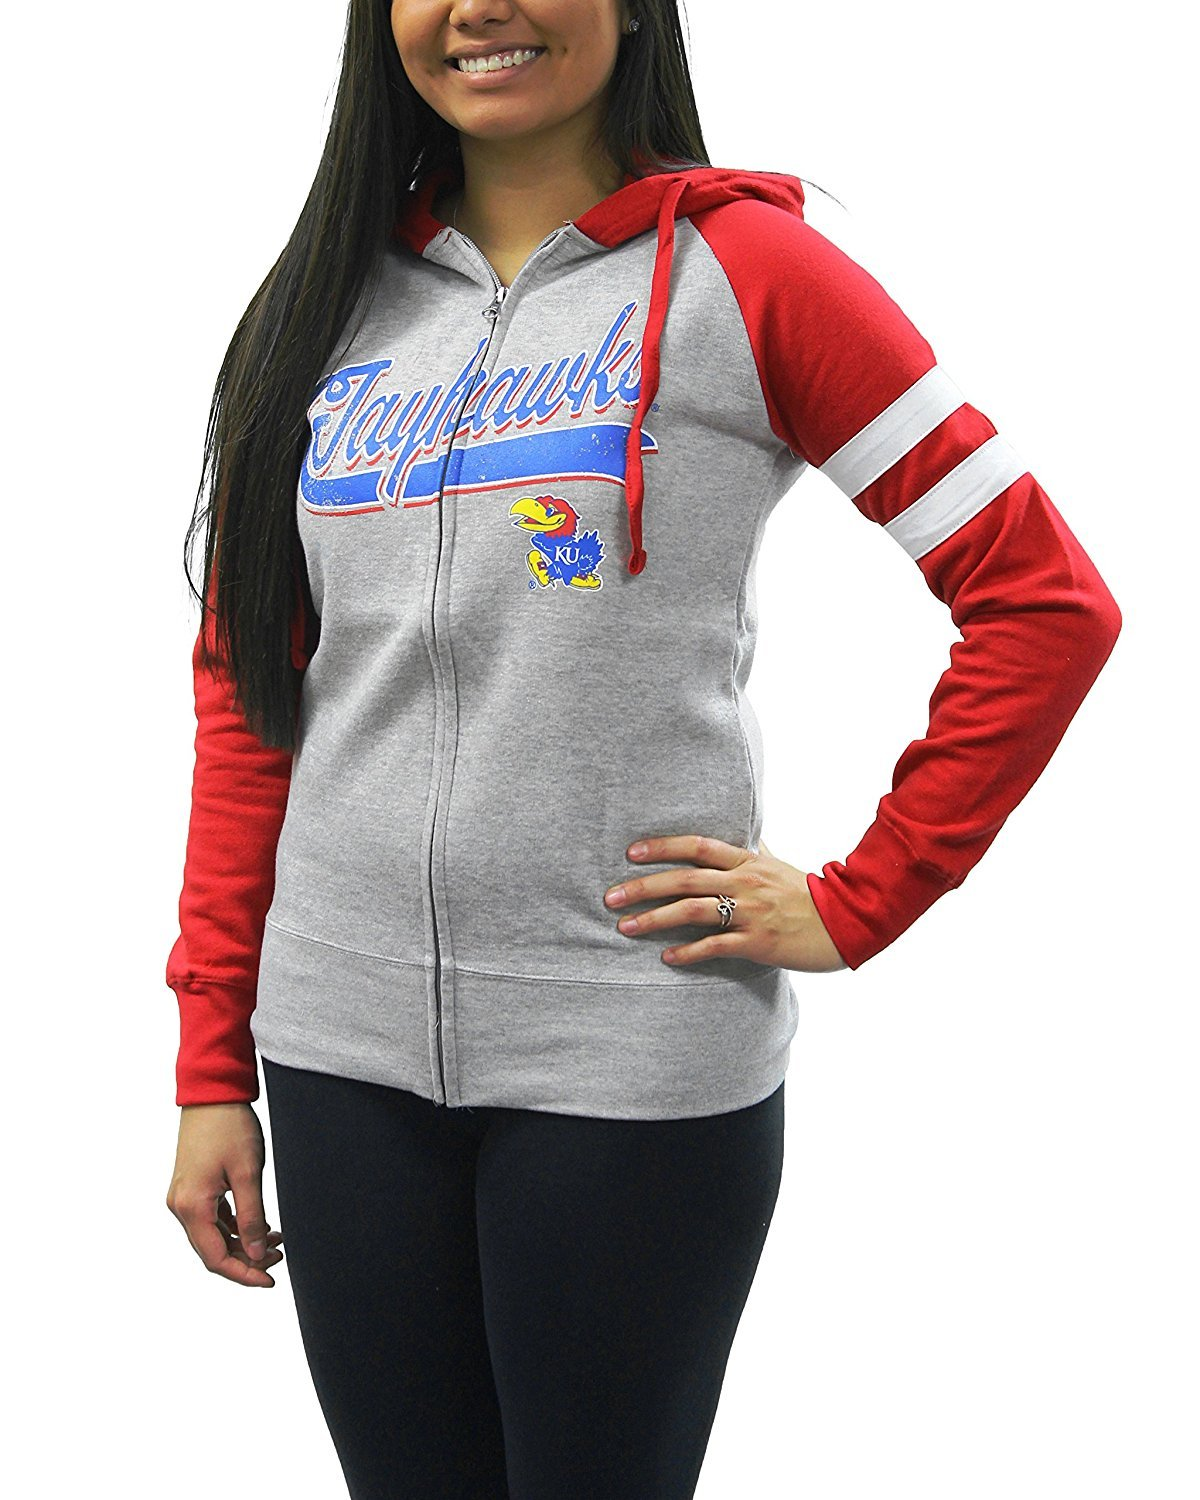 Creative Apparel Women's NCAA Kansas University Jayhawks Sweat Jacket Hoodie by Creative Apparel